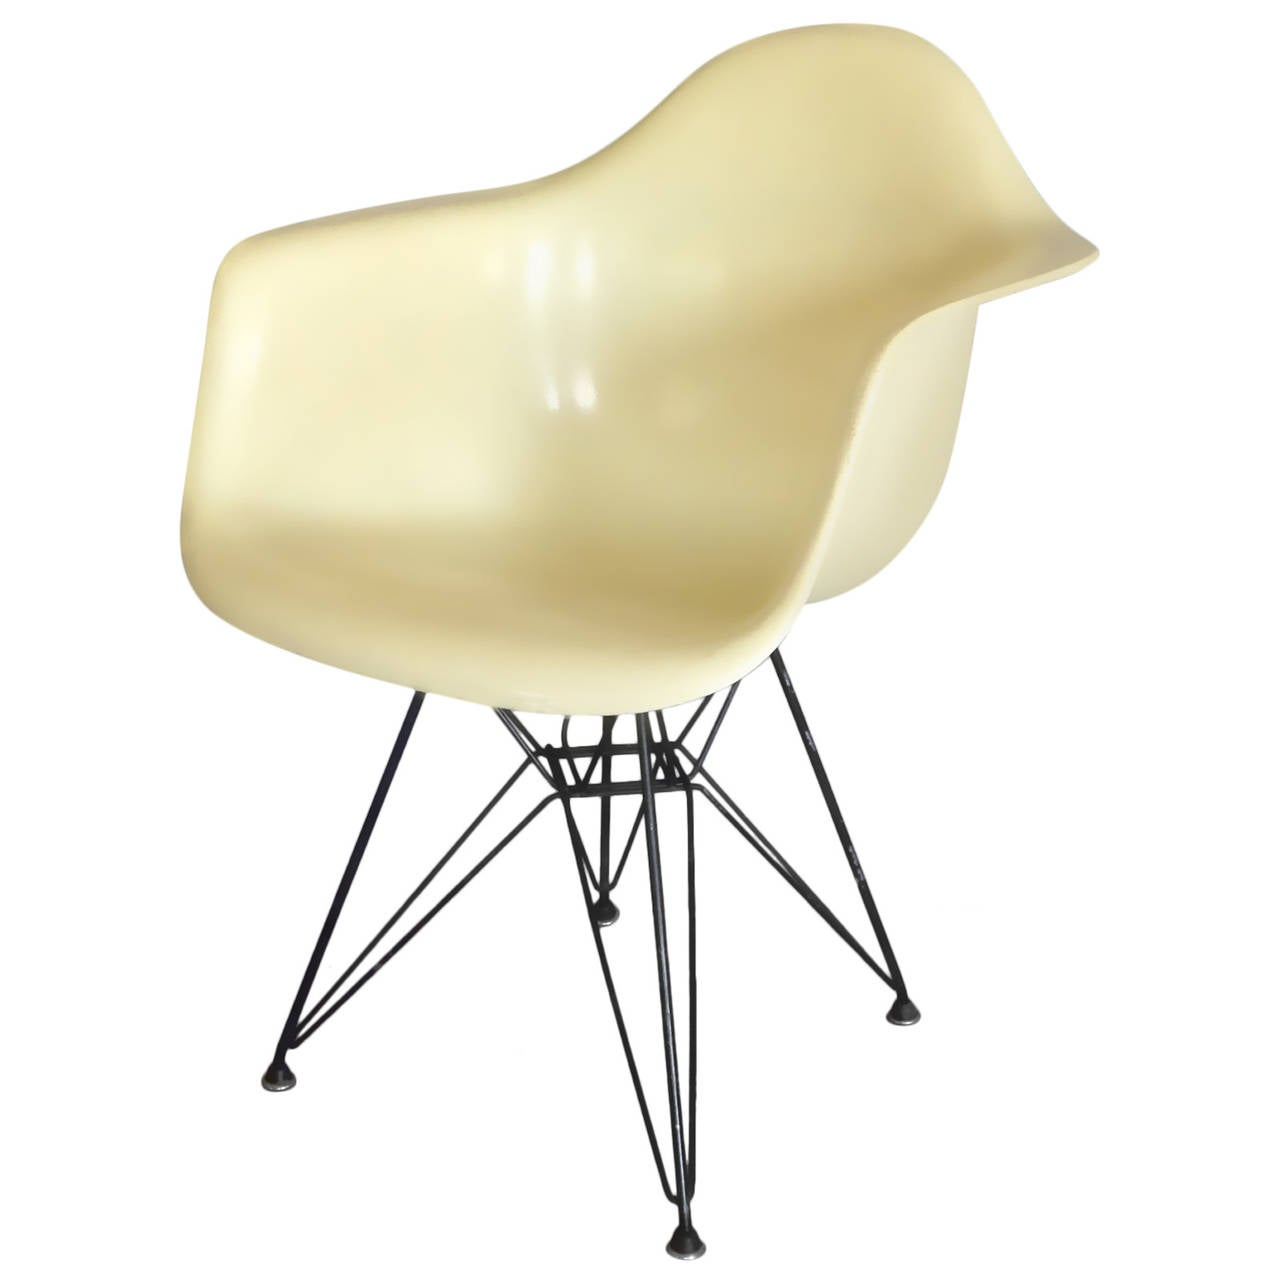 Early Large Biscuit Eames Zenith Ivory DAR Fiberglass Chair On Eiffel Tower  Base 1